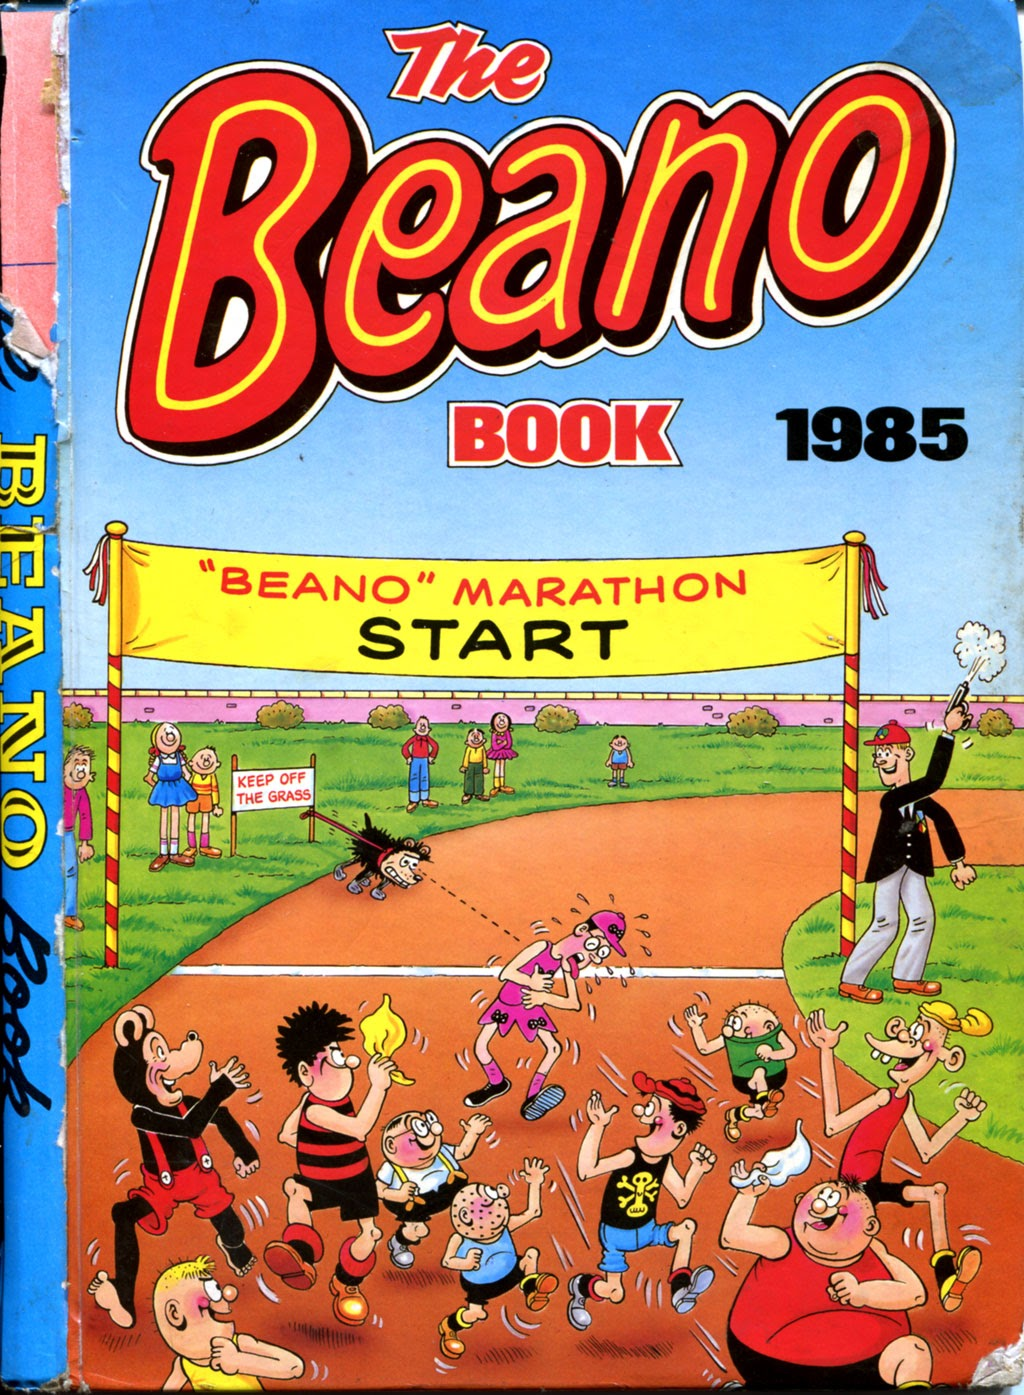 The Beano Book (Annual) 1985 Page 1